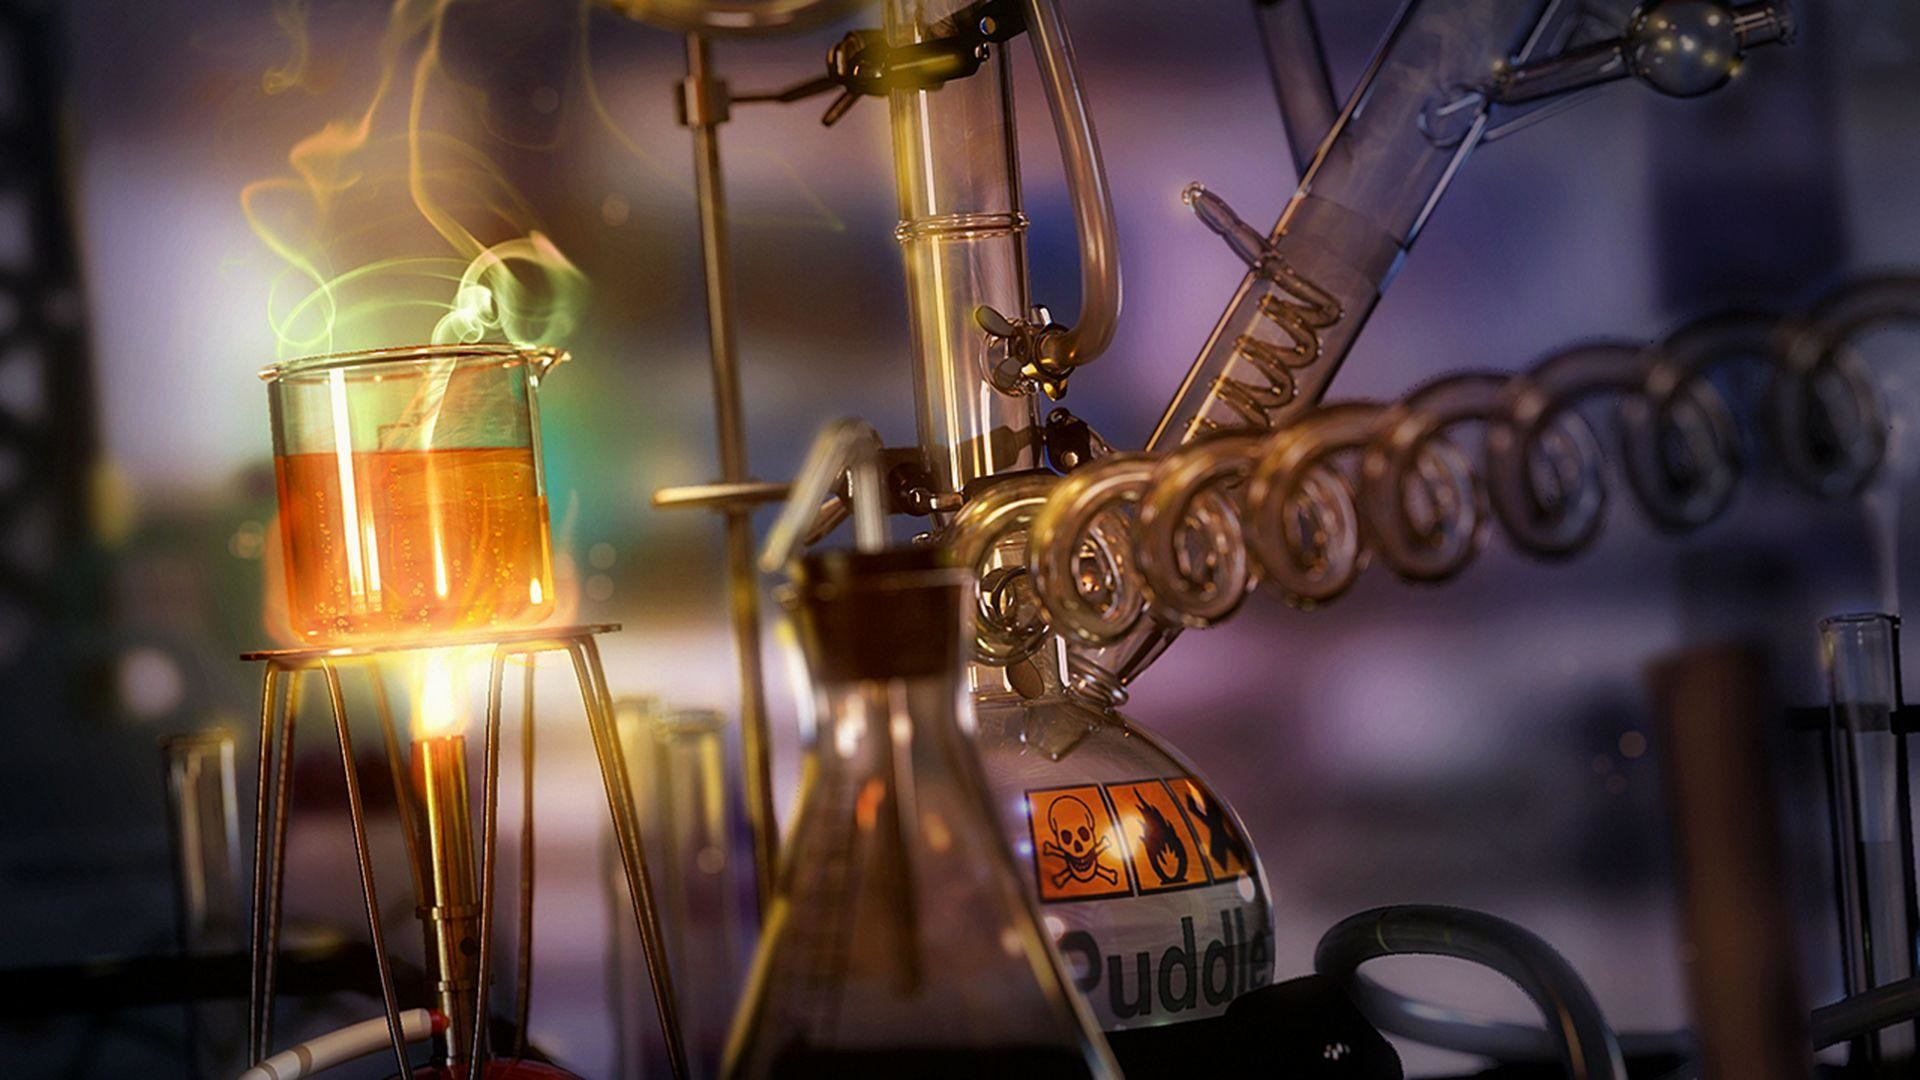 wallpaper.wiki-Chemistry-Background-HD-PIC-WPC006953